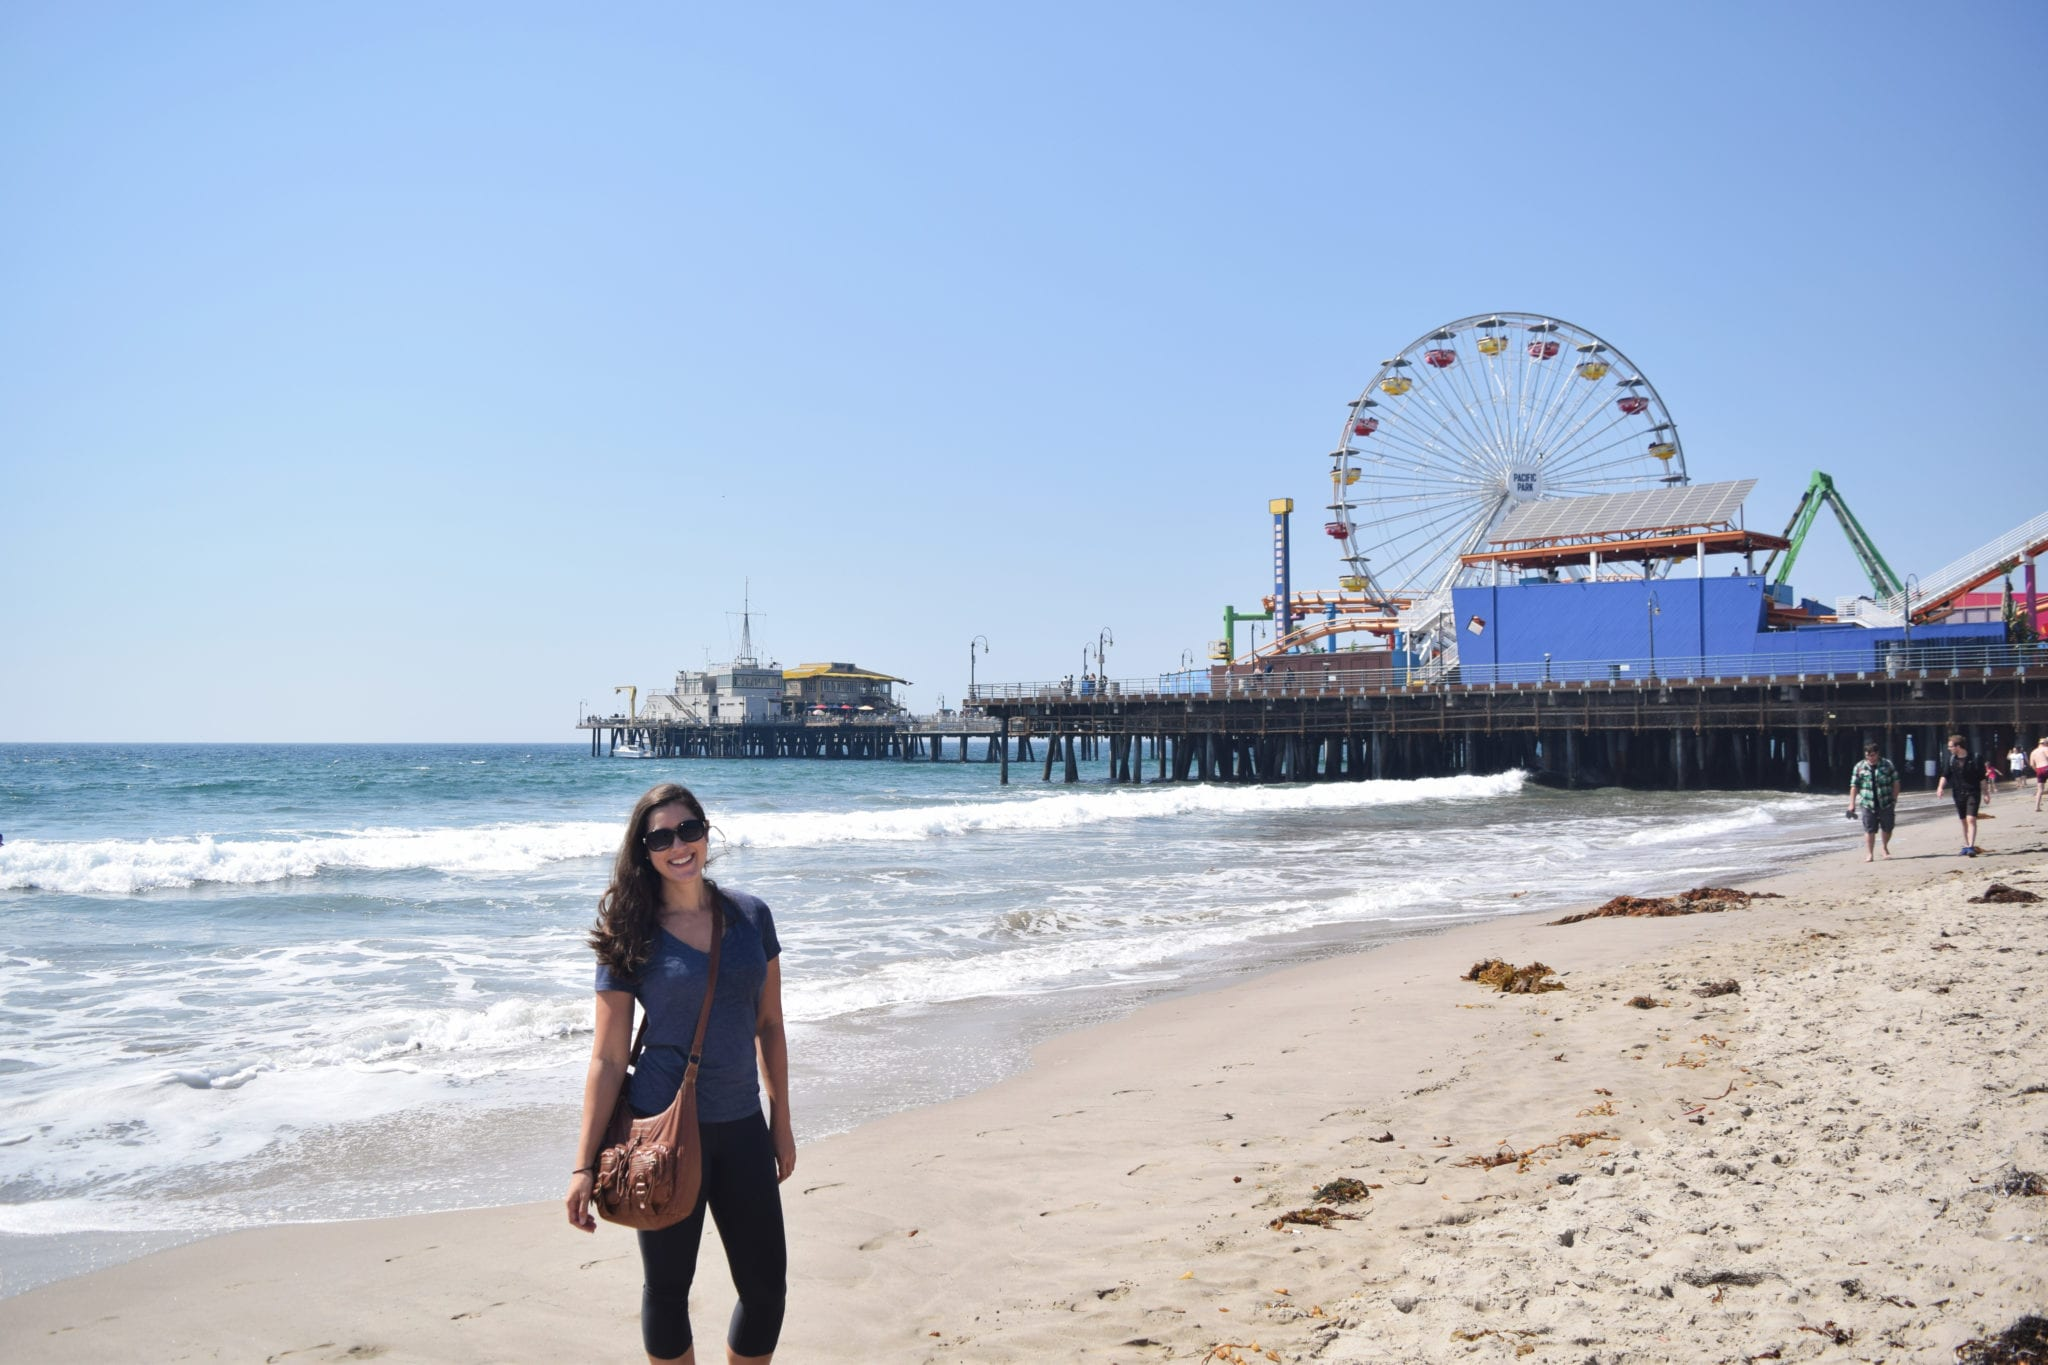 Kate Storm standing on the beach next to Santa Monica Pier is Los Angeles, California, the final destination of some of the most classic USA road trip itinerary ideas